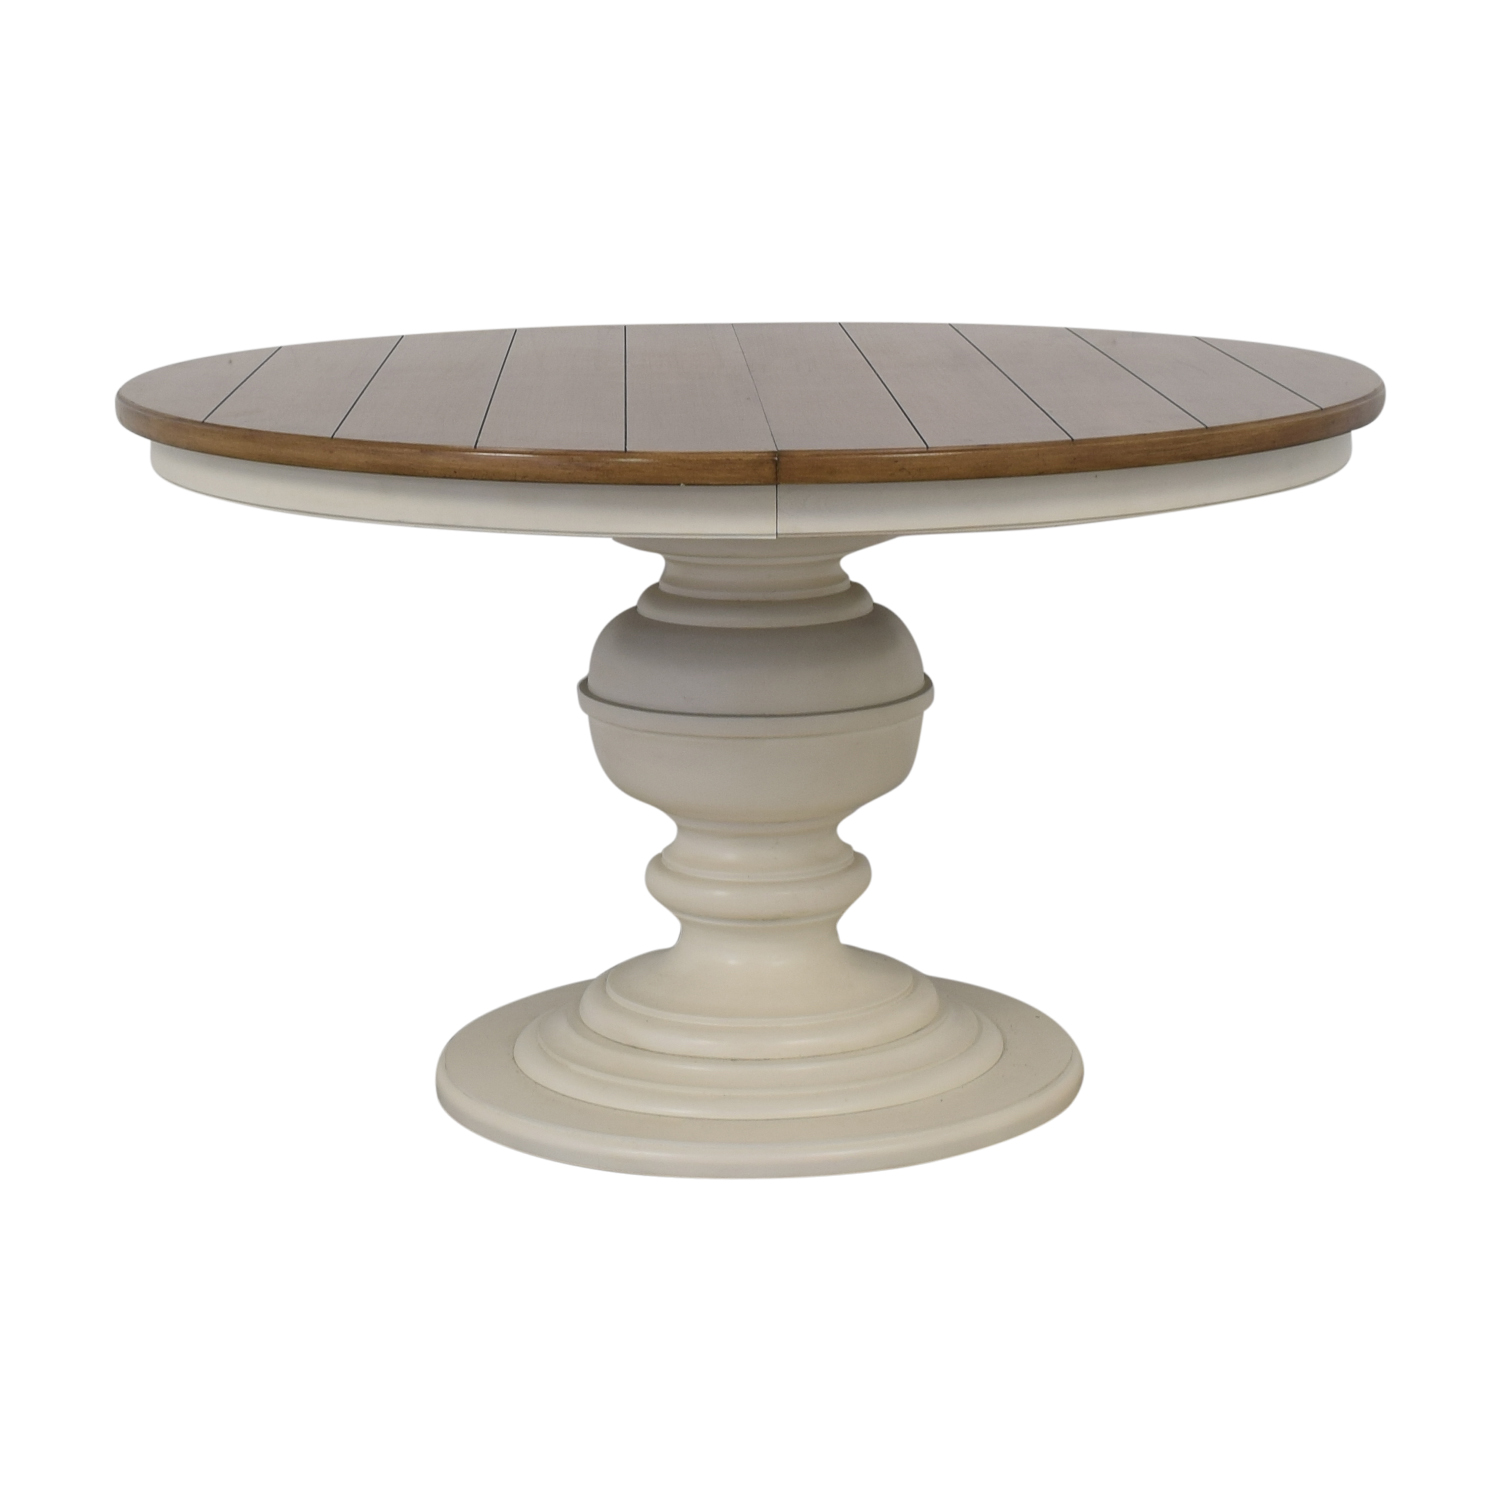 Macy's Macy's Sag Harbor Expandable Round Dining Pedestal Table Dinner Tables